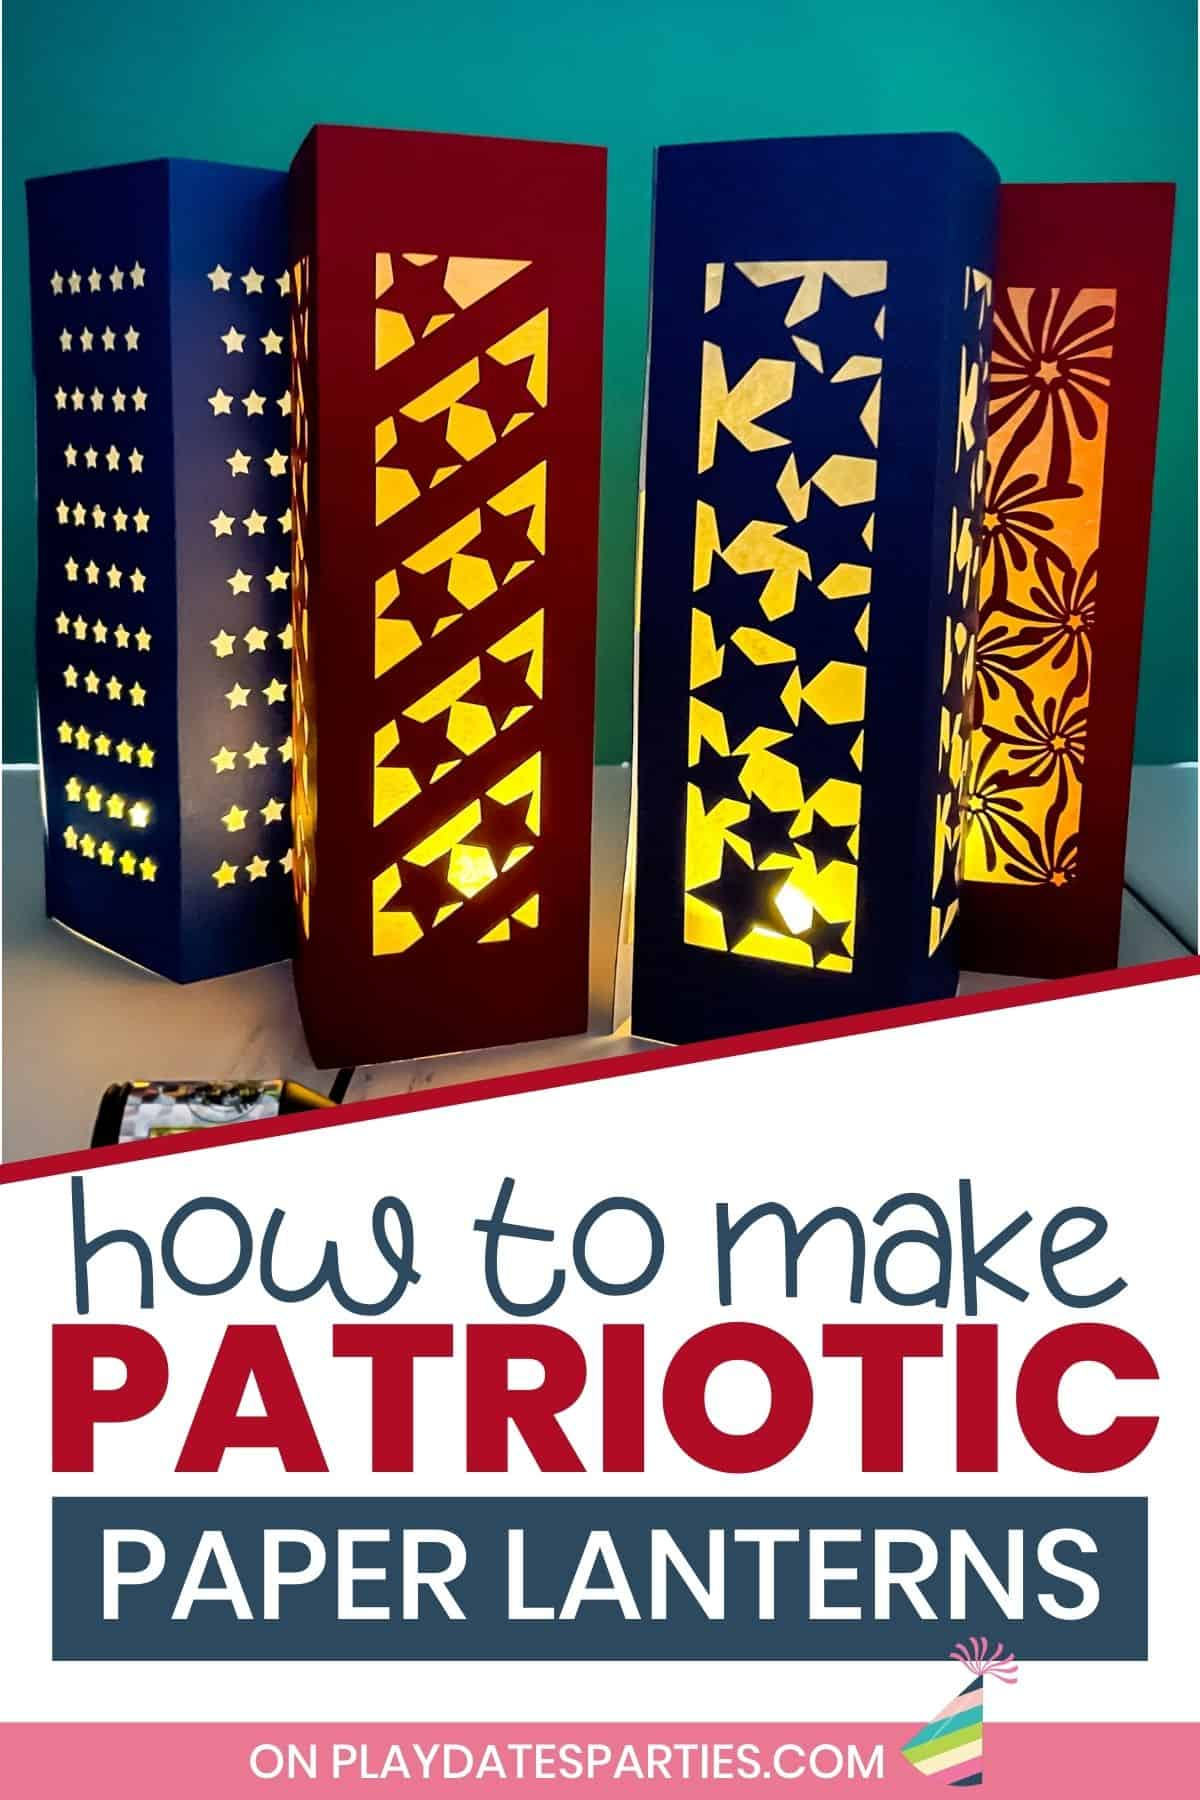 photo of four paper luminaries for July 4th glowing in a dark room with text overlay how to make patriotic paper lanterns